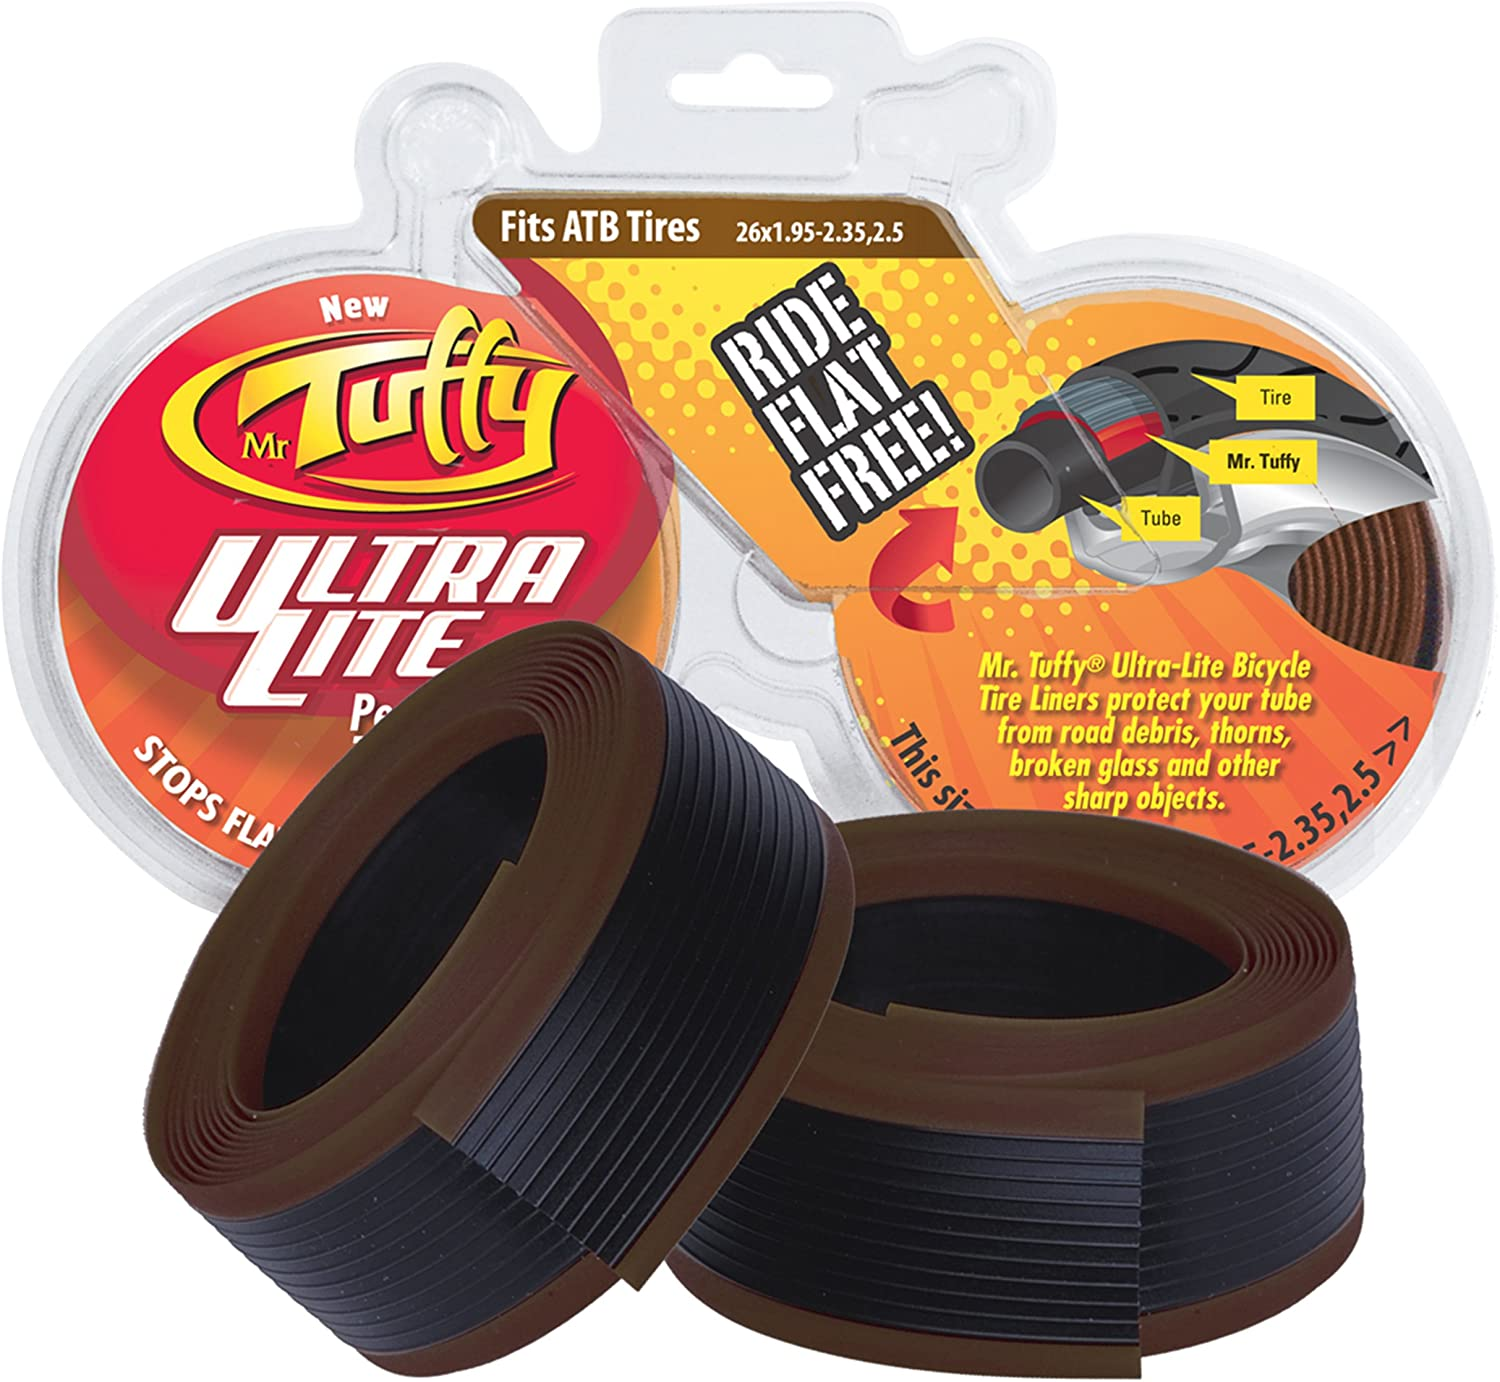 MR TUFFY ANTI-FLAT TIRE LINER FRONT AND REAR 700x20-25 ORANGE PAIR